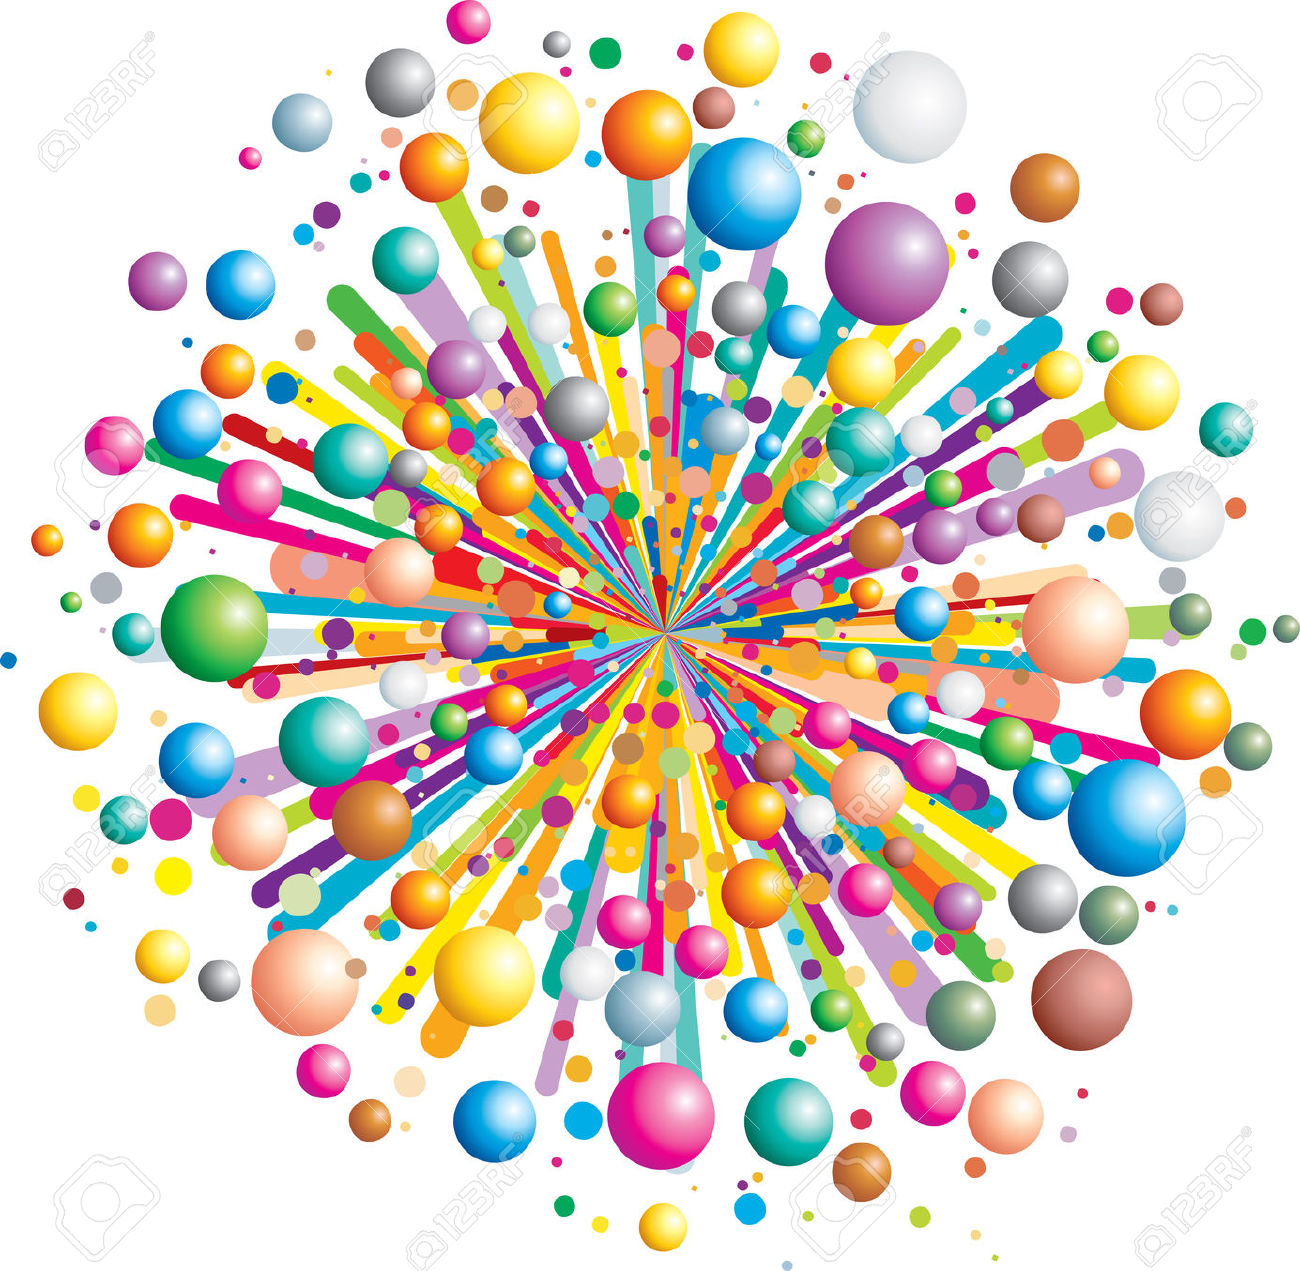 Colorful Funny Explosion.